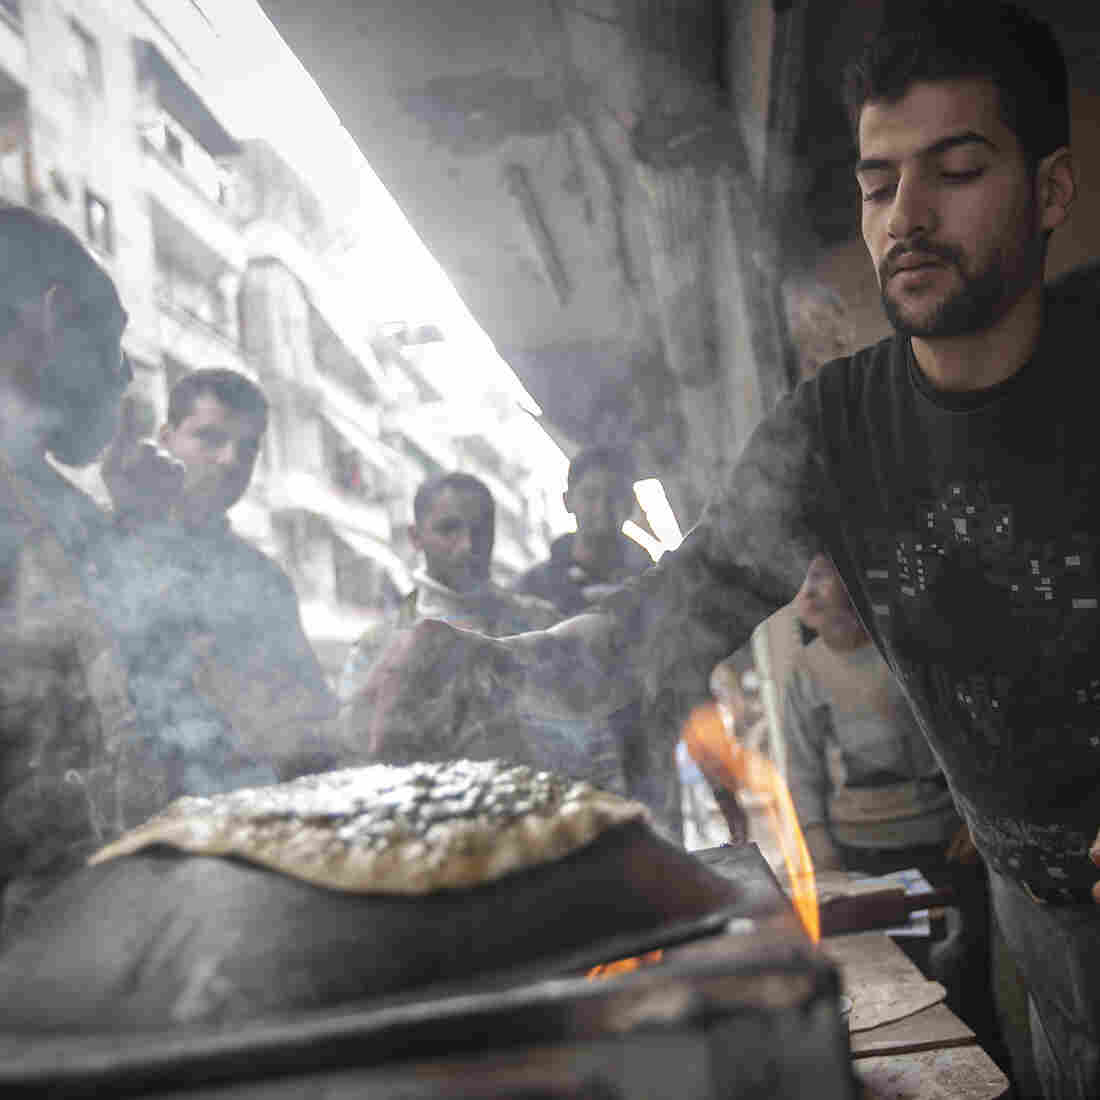 Jihadi Fighters Win Hearts And Minds By Easing Syria's Bread Crisis